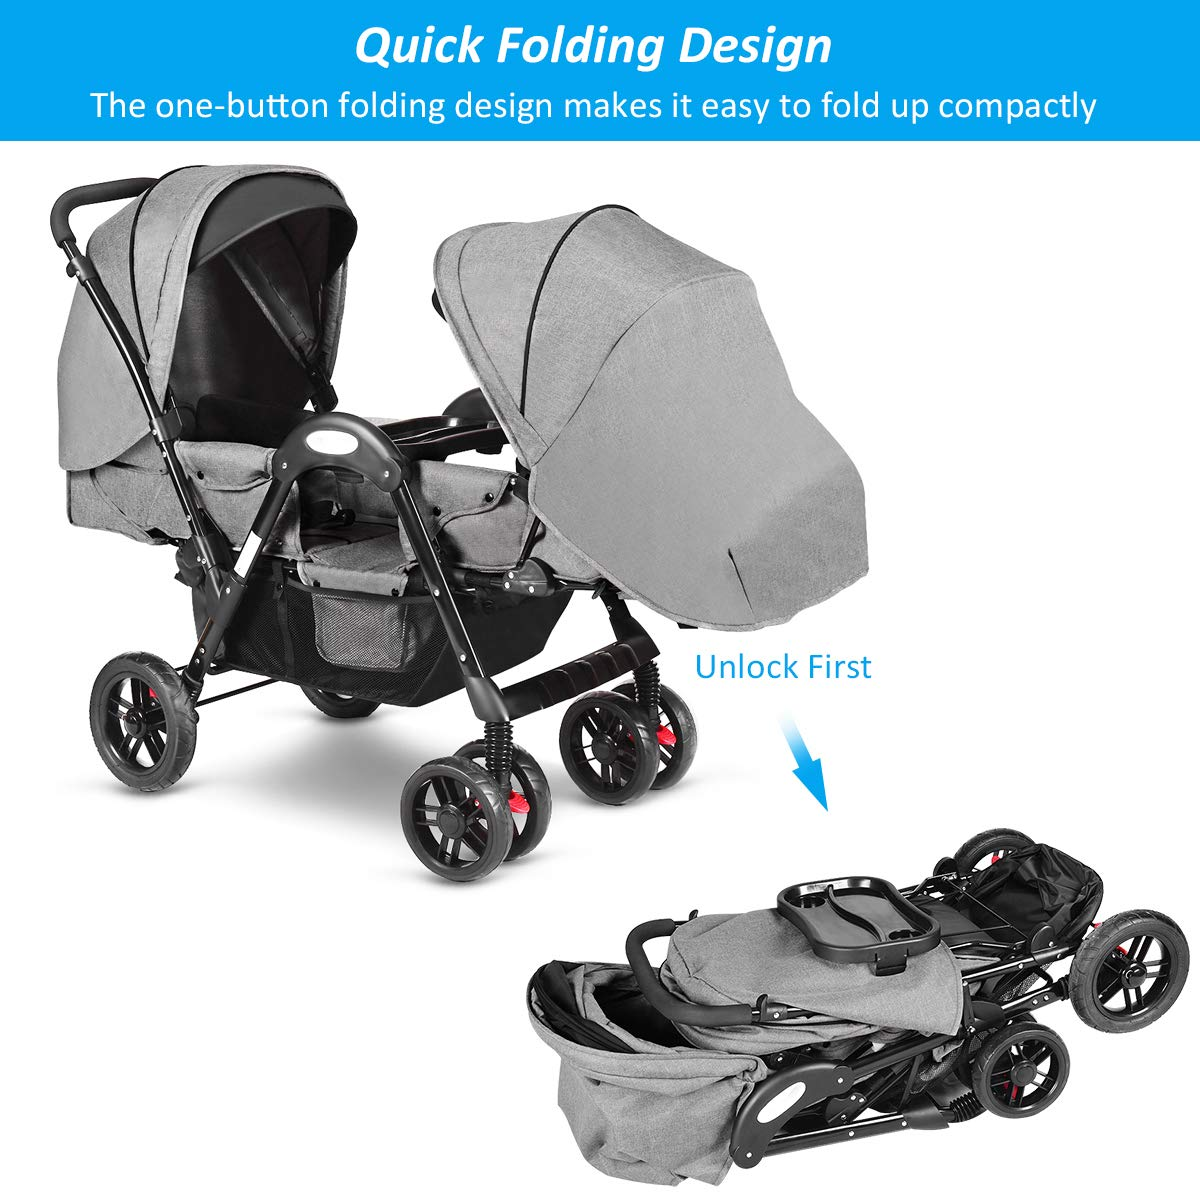 Costzon Double Stroller, Baby Face to Face Carriage with Sleep/Sit/Recline Seat, 5-Point Safety Harness, Detachable Food Tray, Large Storage Space, Gray by Costzon (Image #8)